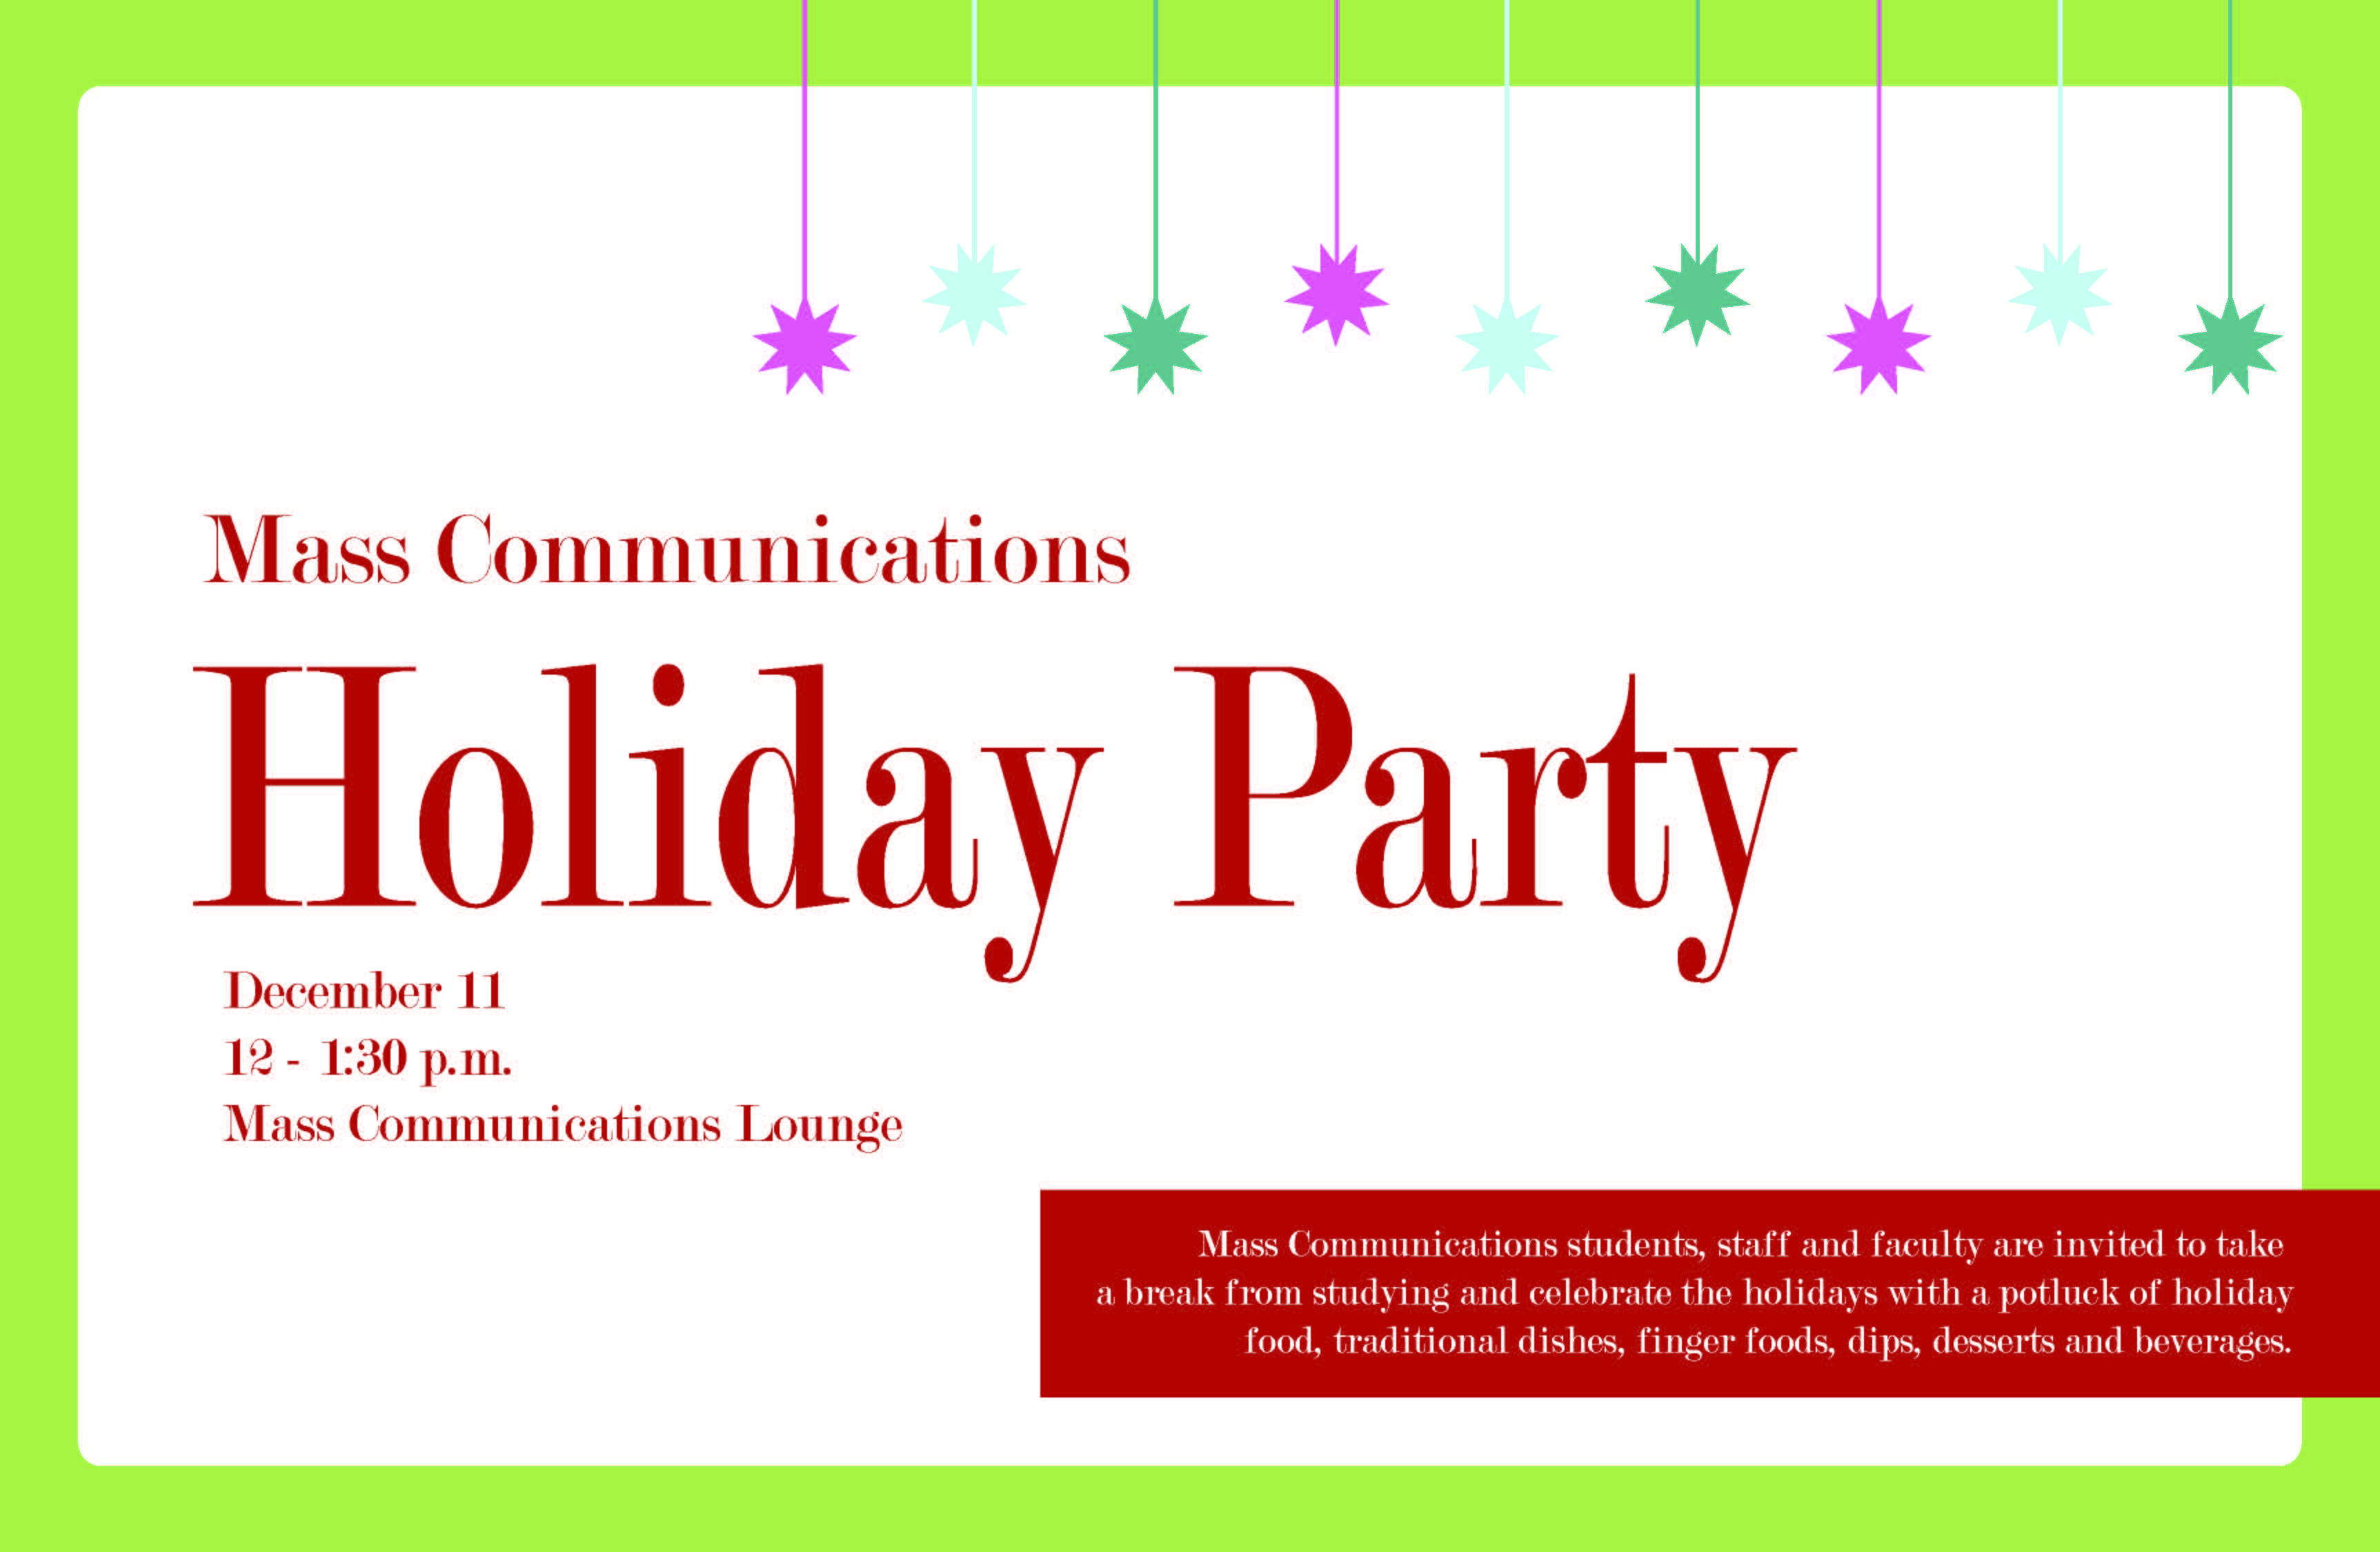 Mass Communications Holiday Party News